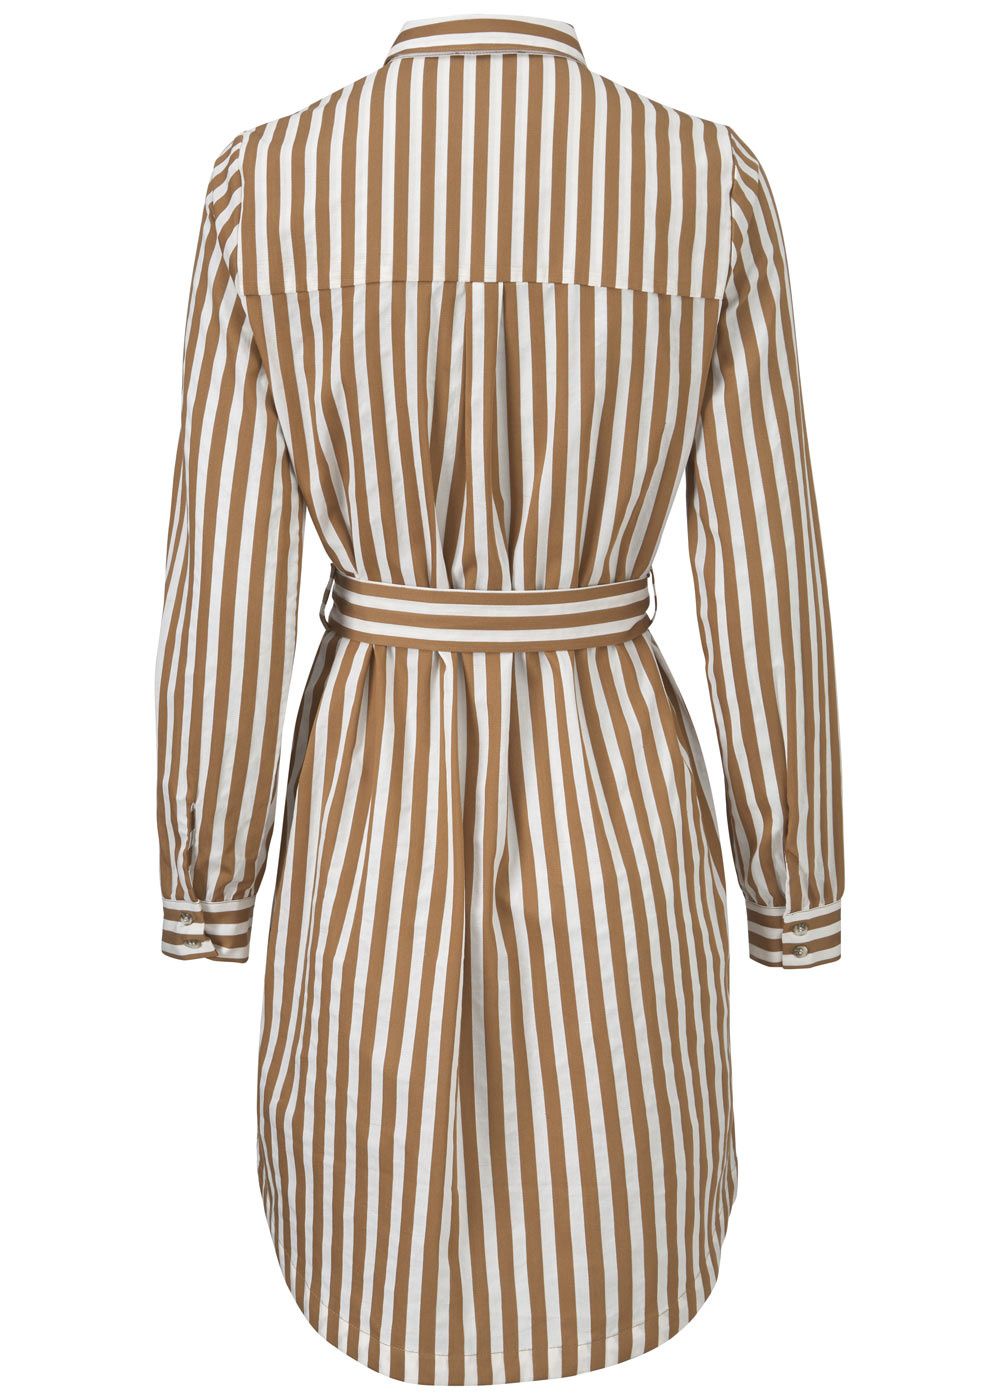 Jurk Barbette Warm Camel stripe-4